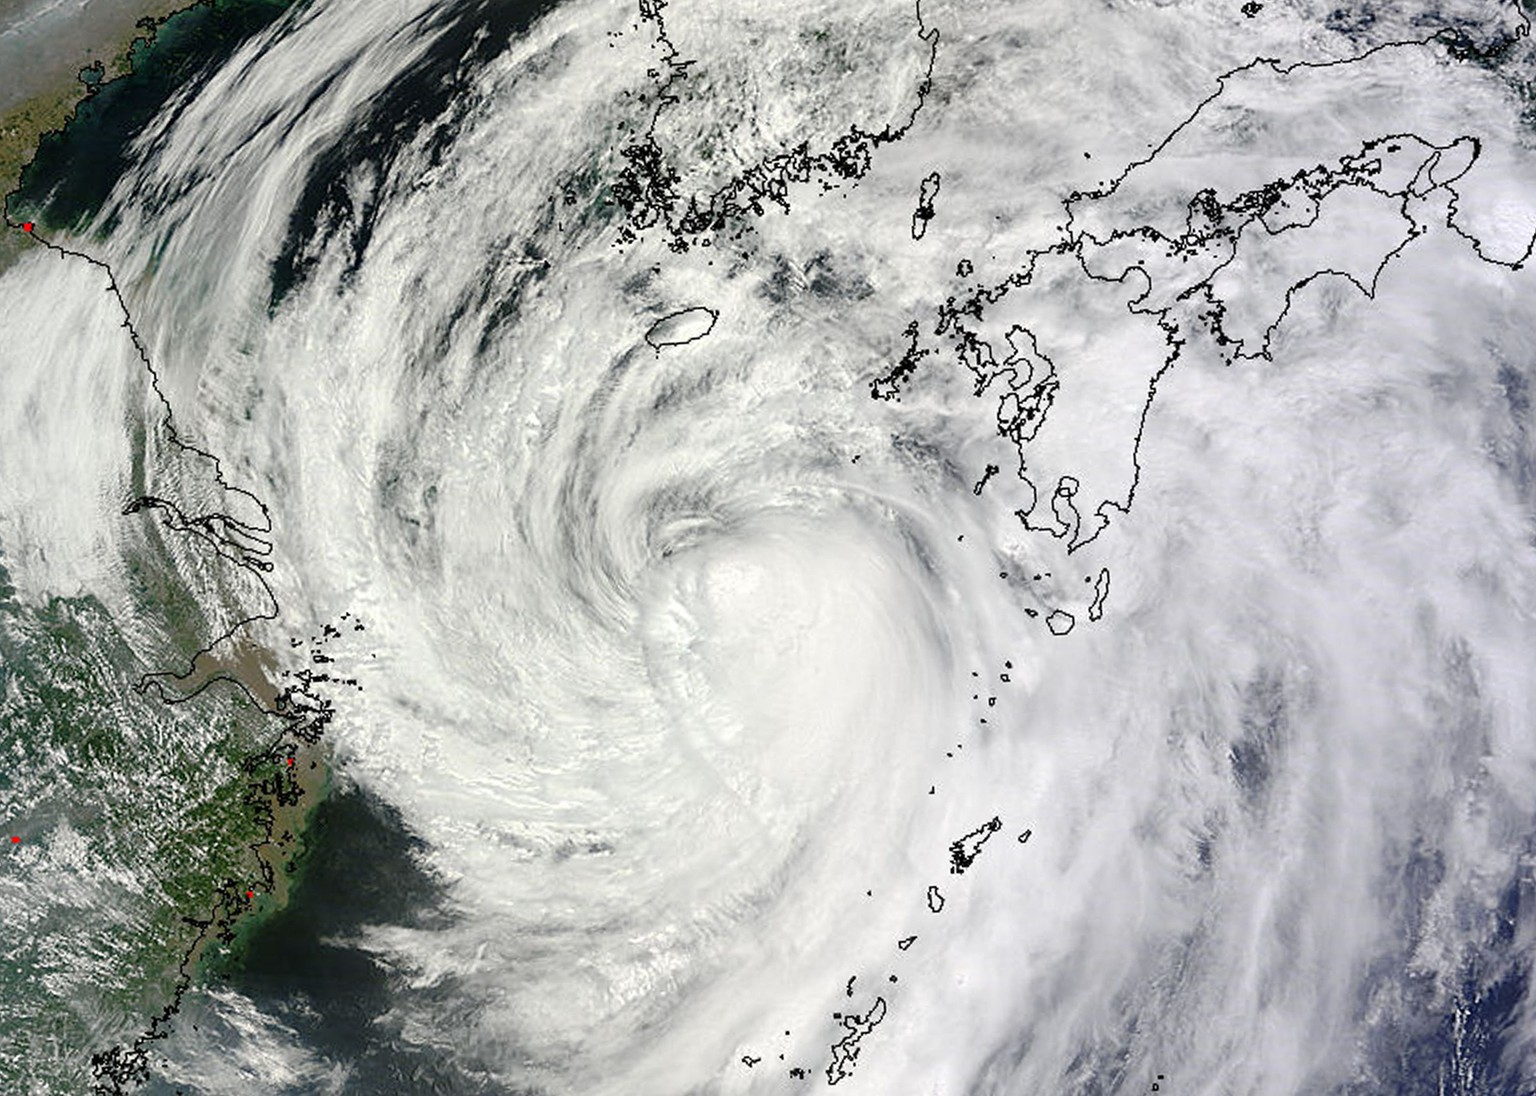 A Moderate Resolution Imaging Spectroradiometer (MODIS) image from  NASA's Terra satellite shows Typhoon Neoguri in the Pacific Ocean approaching Japan's main islands on its northward journey July 9, 2014. Torrential rains from a weakened but still dangerous typhoon battered Japan's Okinawa islands on Wednesday, leaving two dead and threatening widespread flooding as the storm headed for the nation's main islands. Picture taken July 9, 2014. REUTERS/NOAA/Handout via Reuters (DISASTER ENVIRONMENT)  ATTENTION EDITORS - THIS PICTURE WAS PROVIDED BY A THIRD PARTY. REUTERS IS UNABLE TO INDEPENDENTLY VERIFY THE AUTHENTICITY, CONTENT, LOCATION OR DATE OF THIS IMAGE. FOR EDITORIAL USE ONLY. NOT FOR SALE FOR MARKETING OR ADVERTISING CAMPAIGNS. THIS PICTURE WAS PROCESSED BY REUTERS TO ENHANCE QUALITY. AN UNPROCESSED VERSION WILL BE PROVIDED SEPARATELY